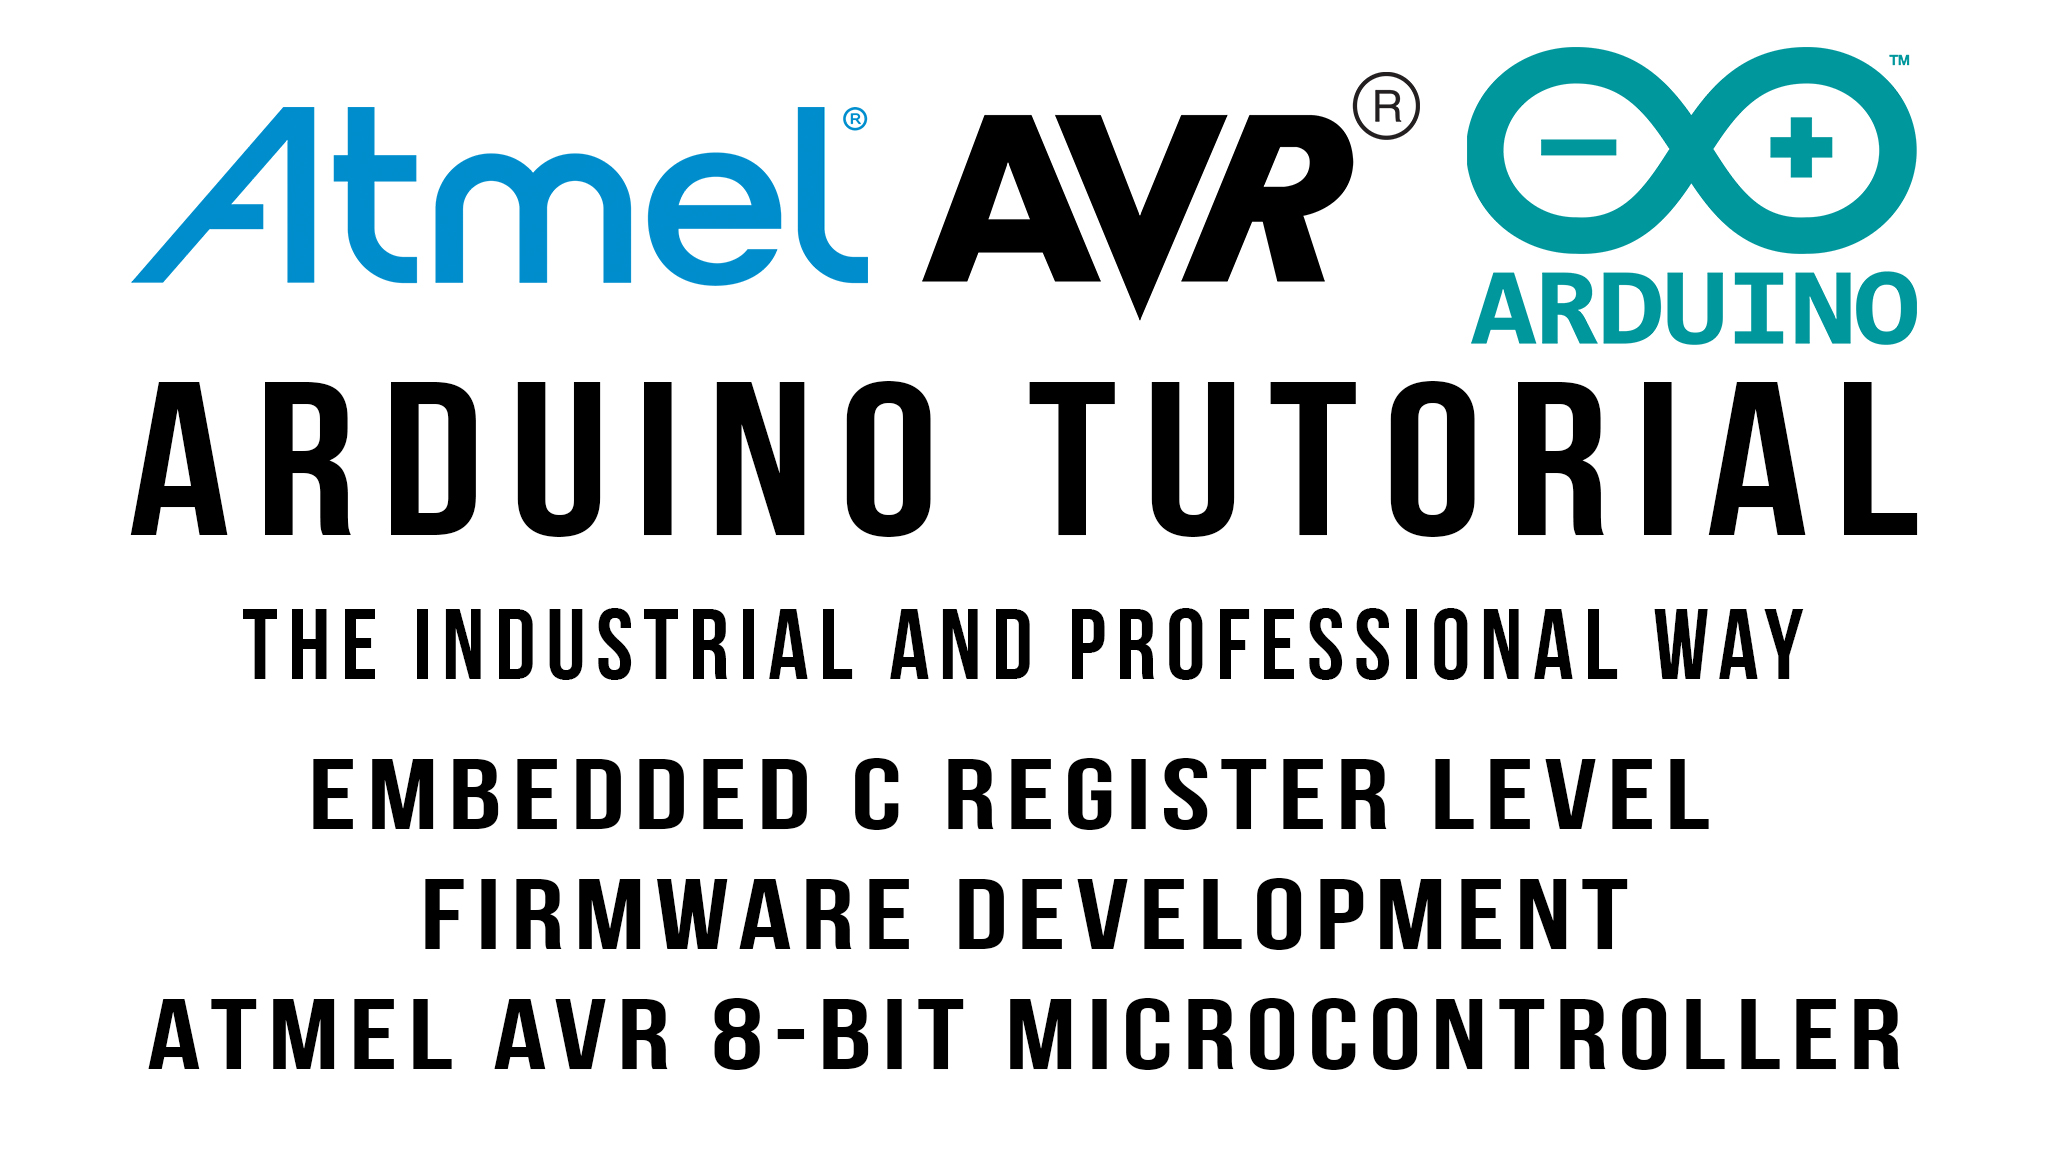 Arduino Tutorial - The Industrial and Professional Way - Atmel AVR 8-bit